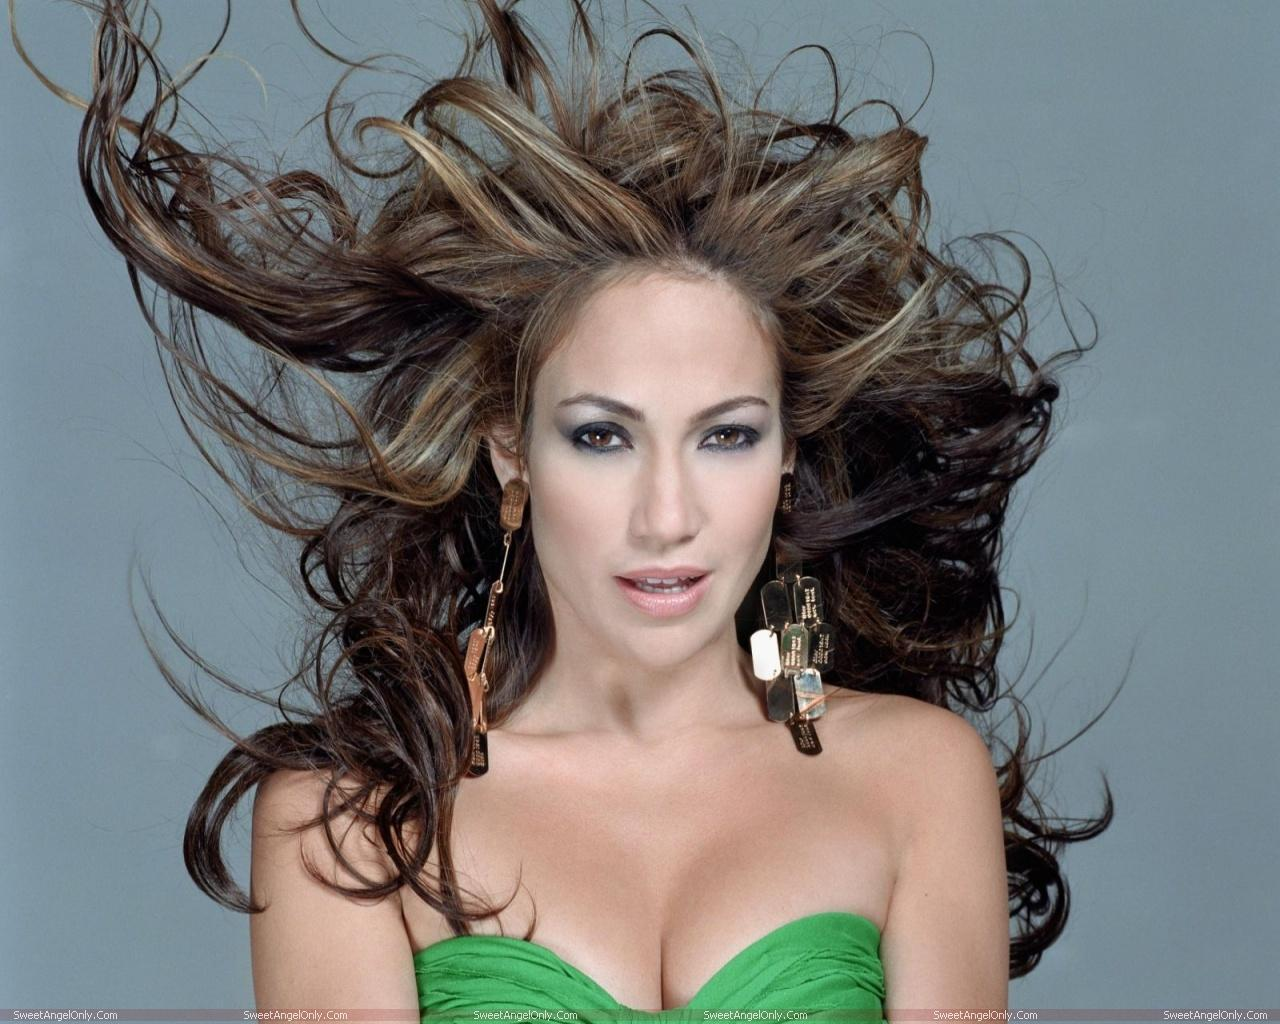 http://4.bp.blogspot.com/-53WHemYxKlw/TWjnCU78yWI/AAAAAAAAE1E/gzGD98kvsPo/s1600/actress_jennifer_lopez_hot_wallpapers_07.jpg